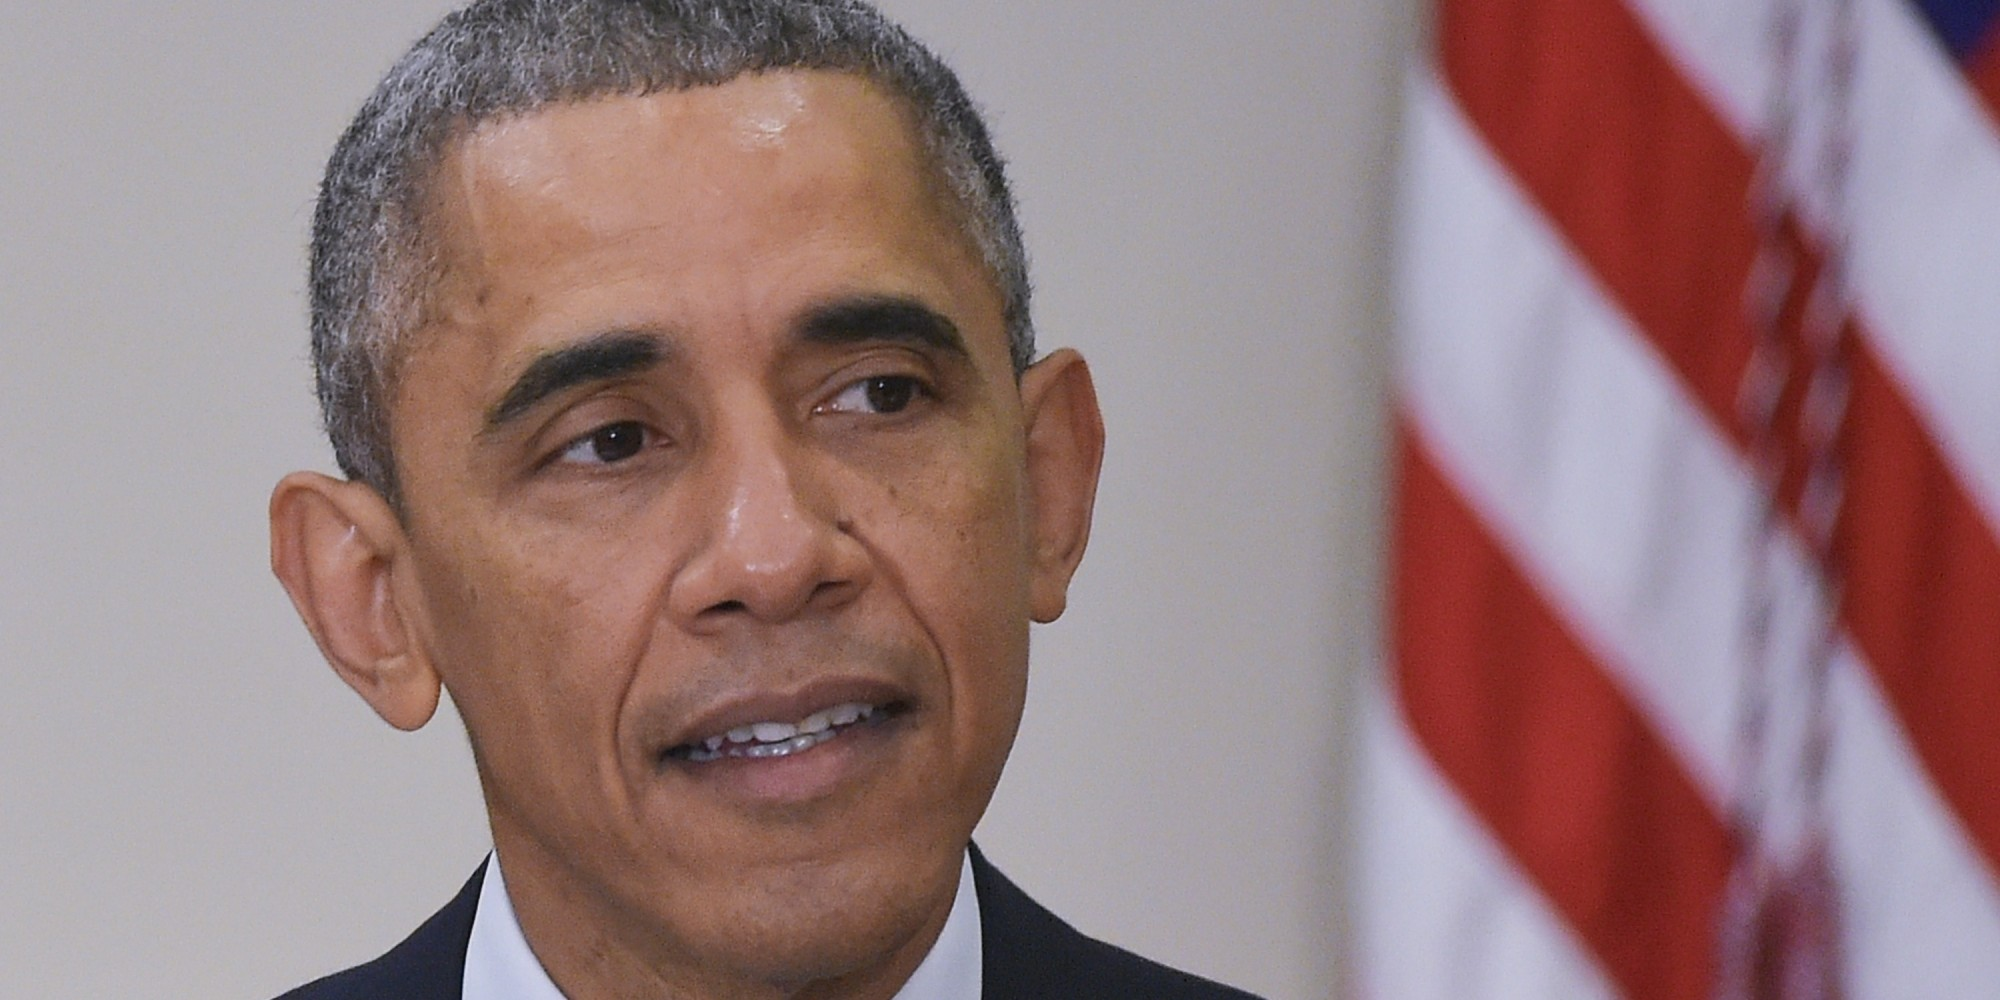 Obama Ends 2014 With Swagger And A Boatload Of Unanswered ...Barack Obama Swagger